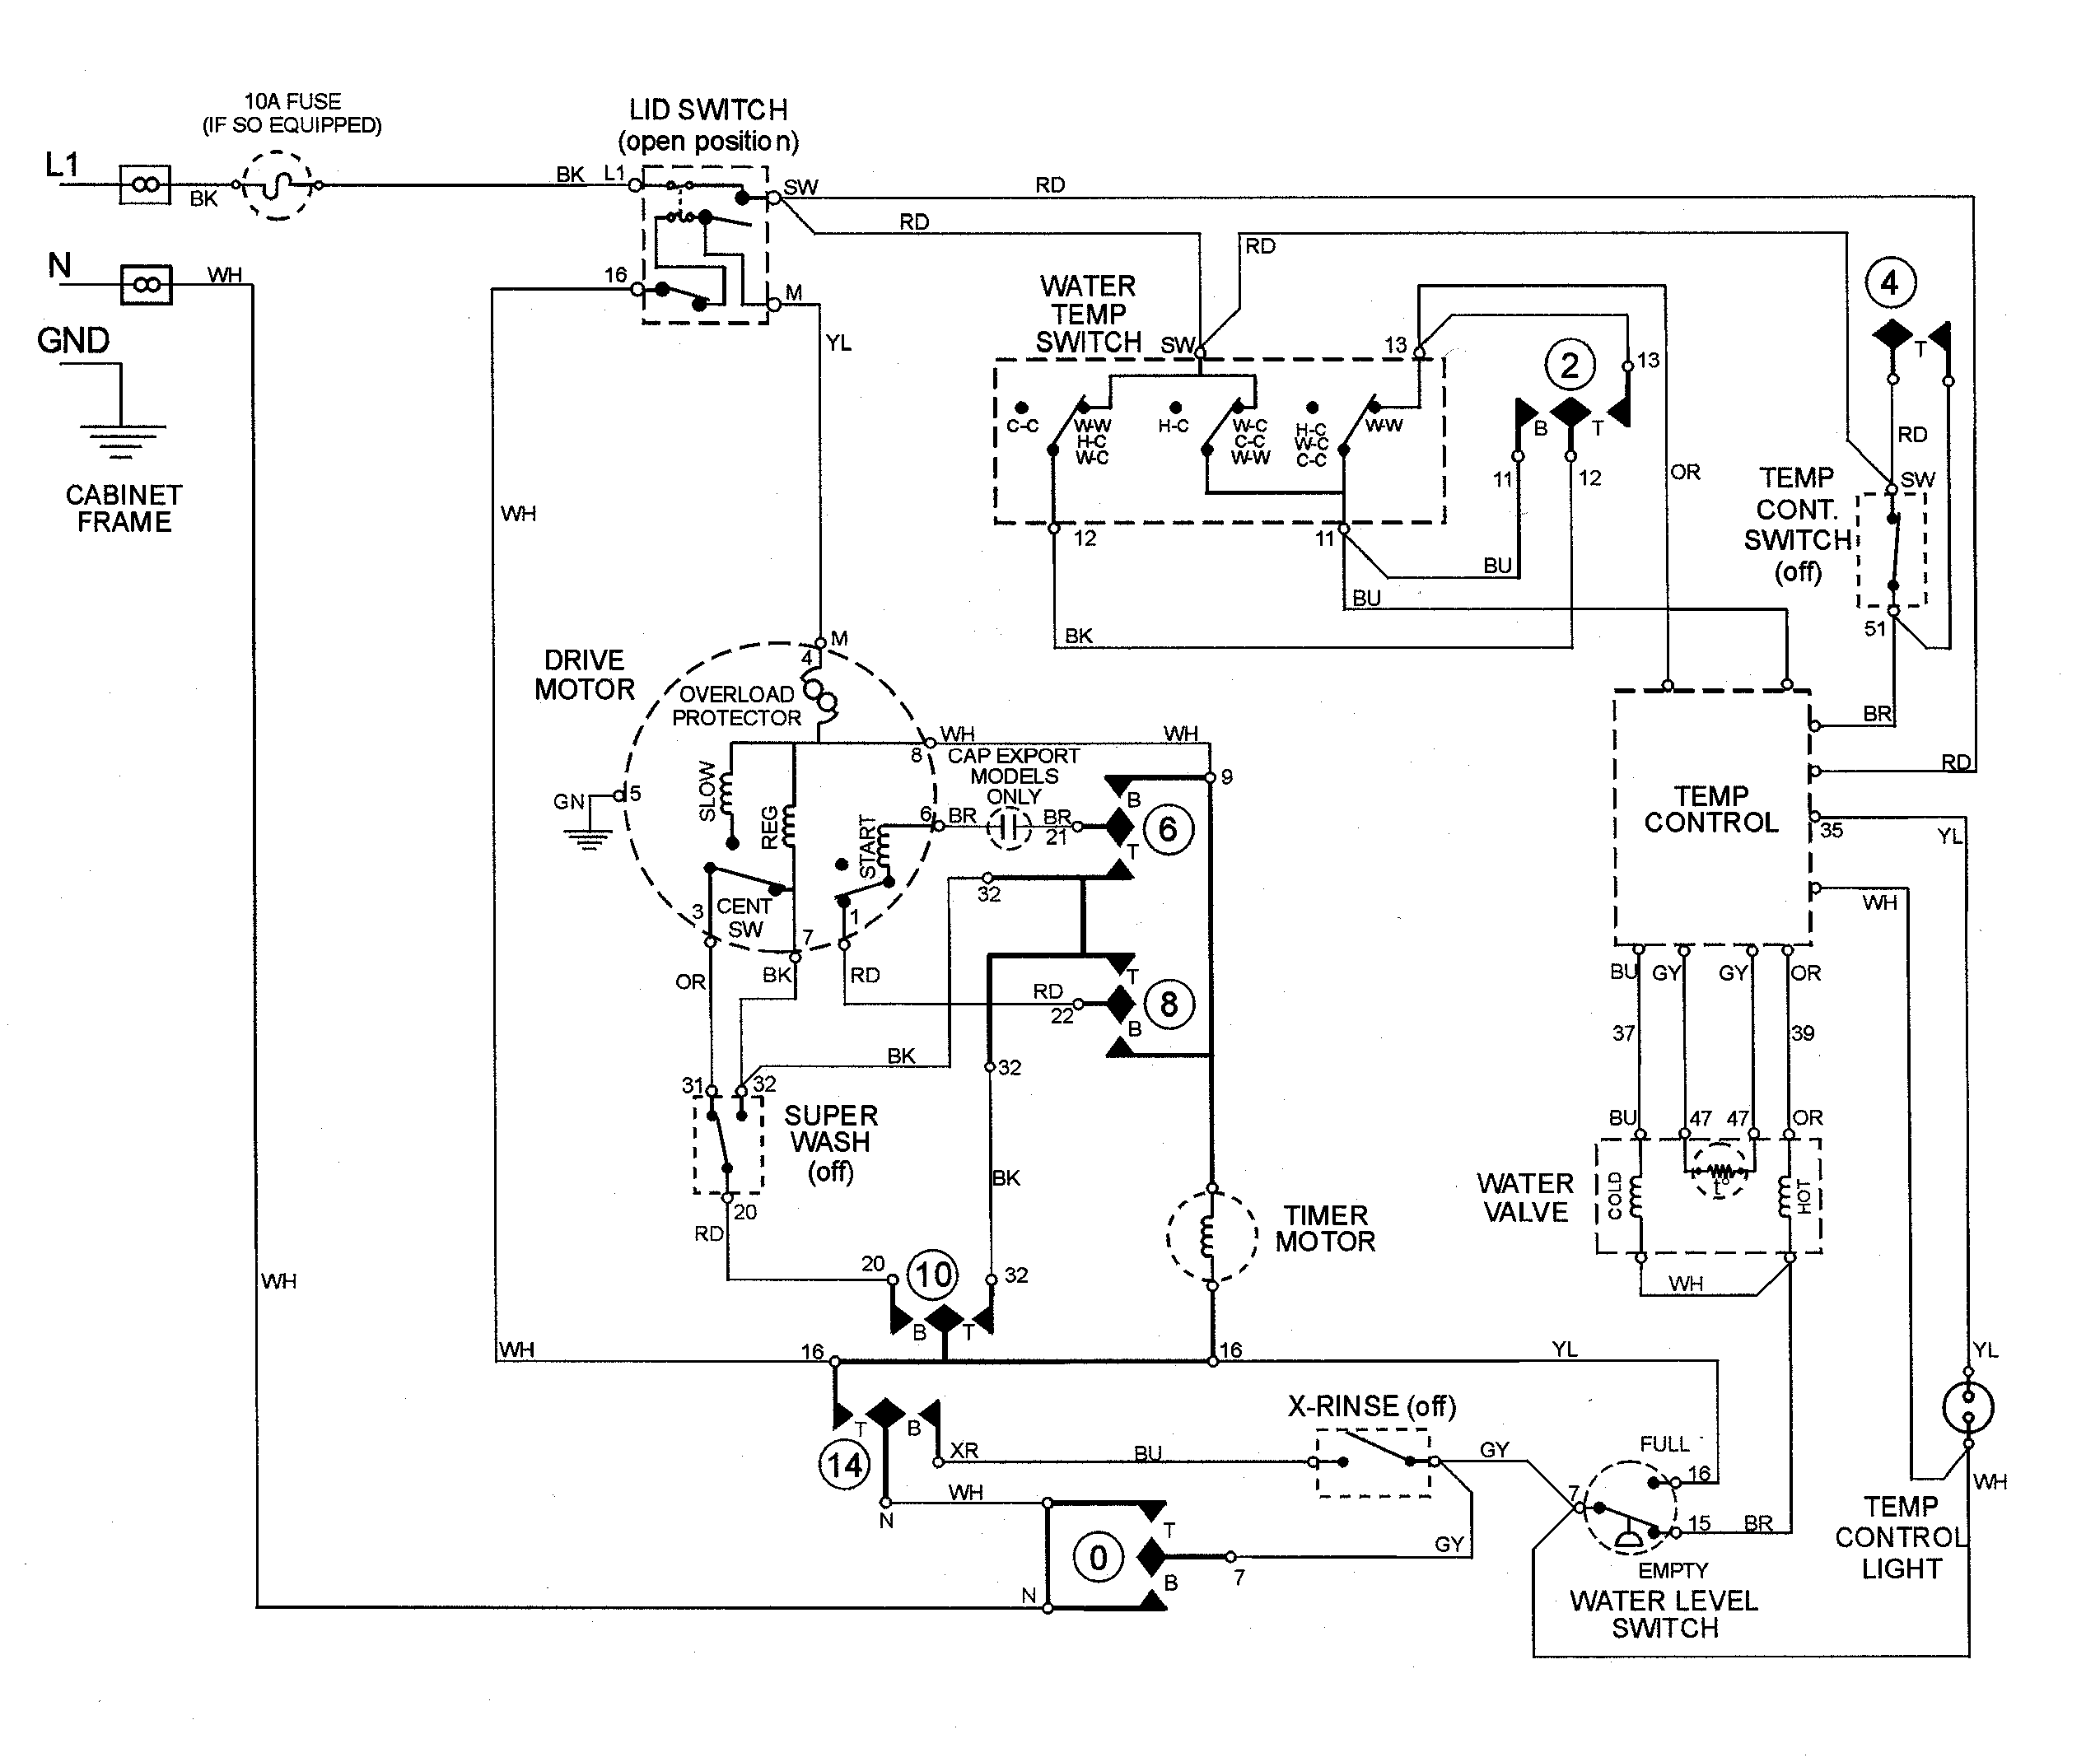 machines wiring diagram wires wiring diagram split 120v washer wire diagram wiring diagram host machines wiring [ 2550 x 2140 Pixel ]